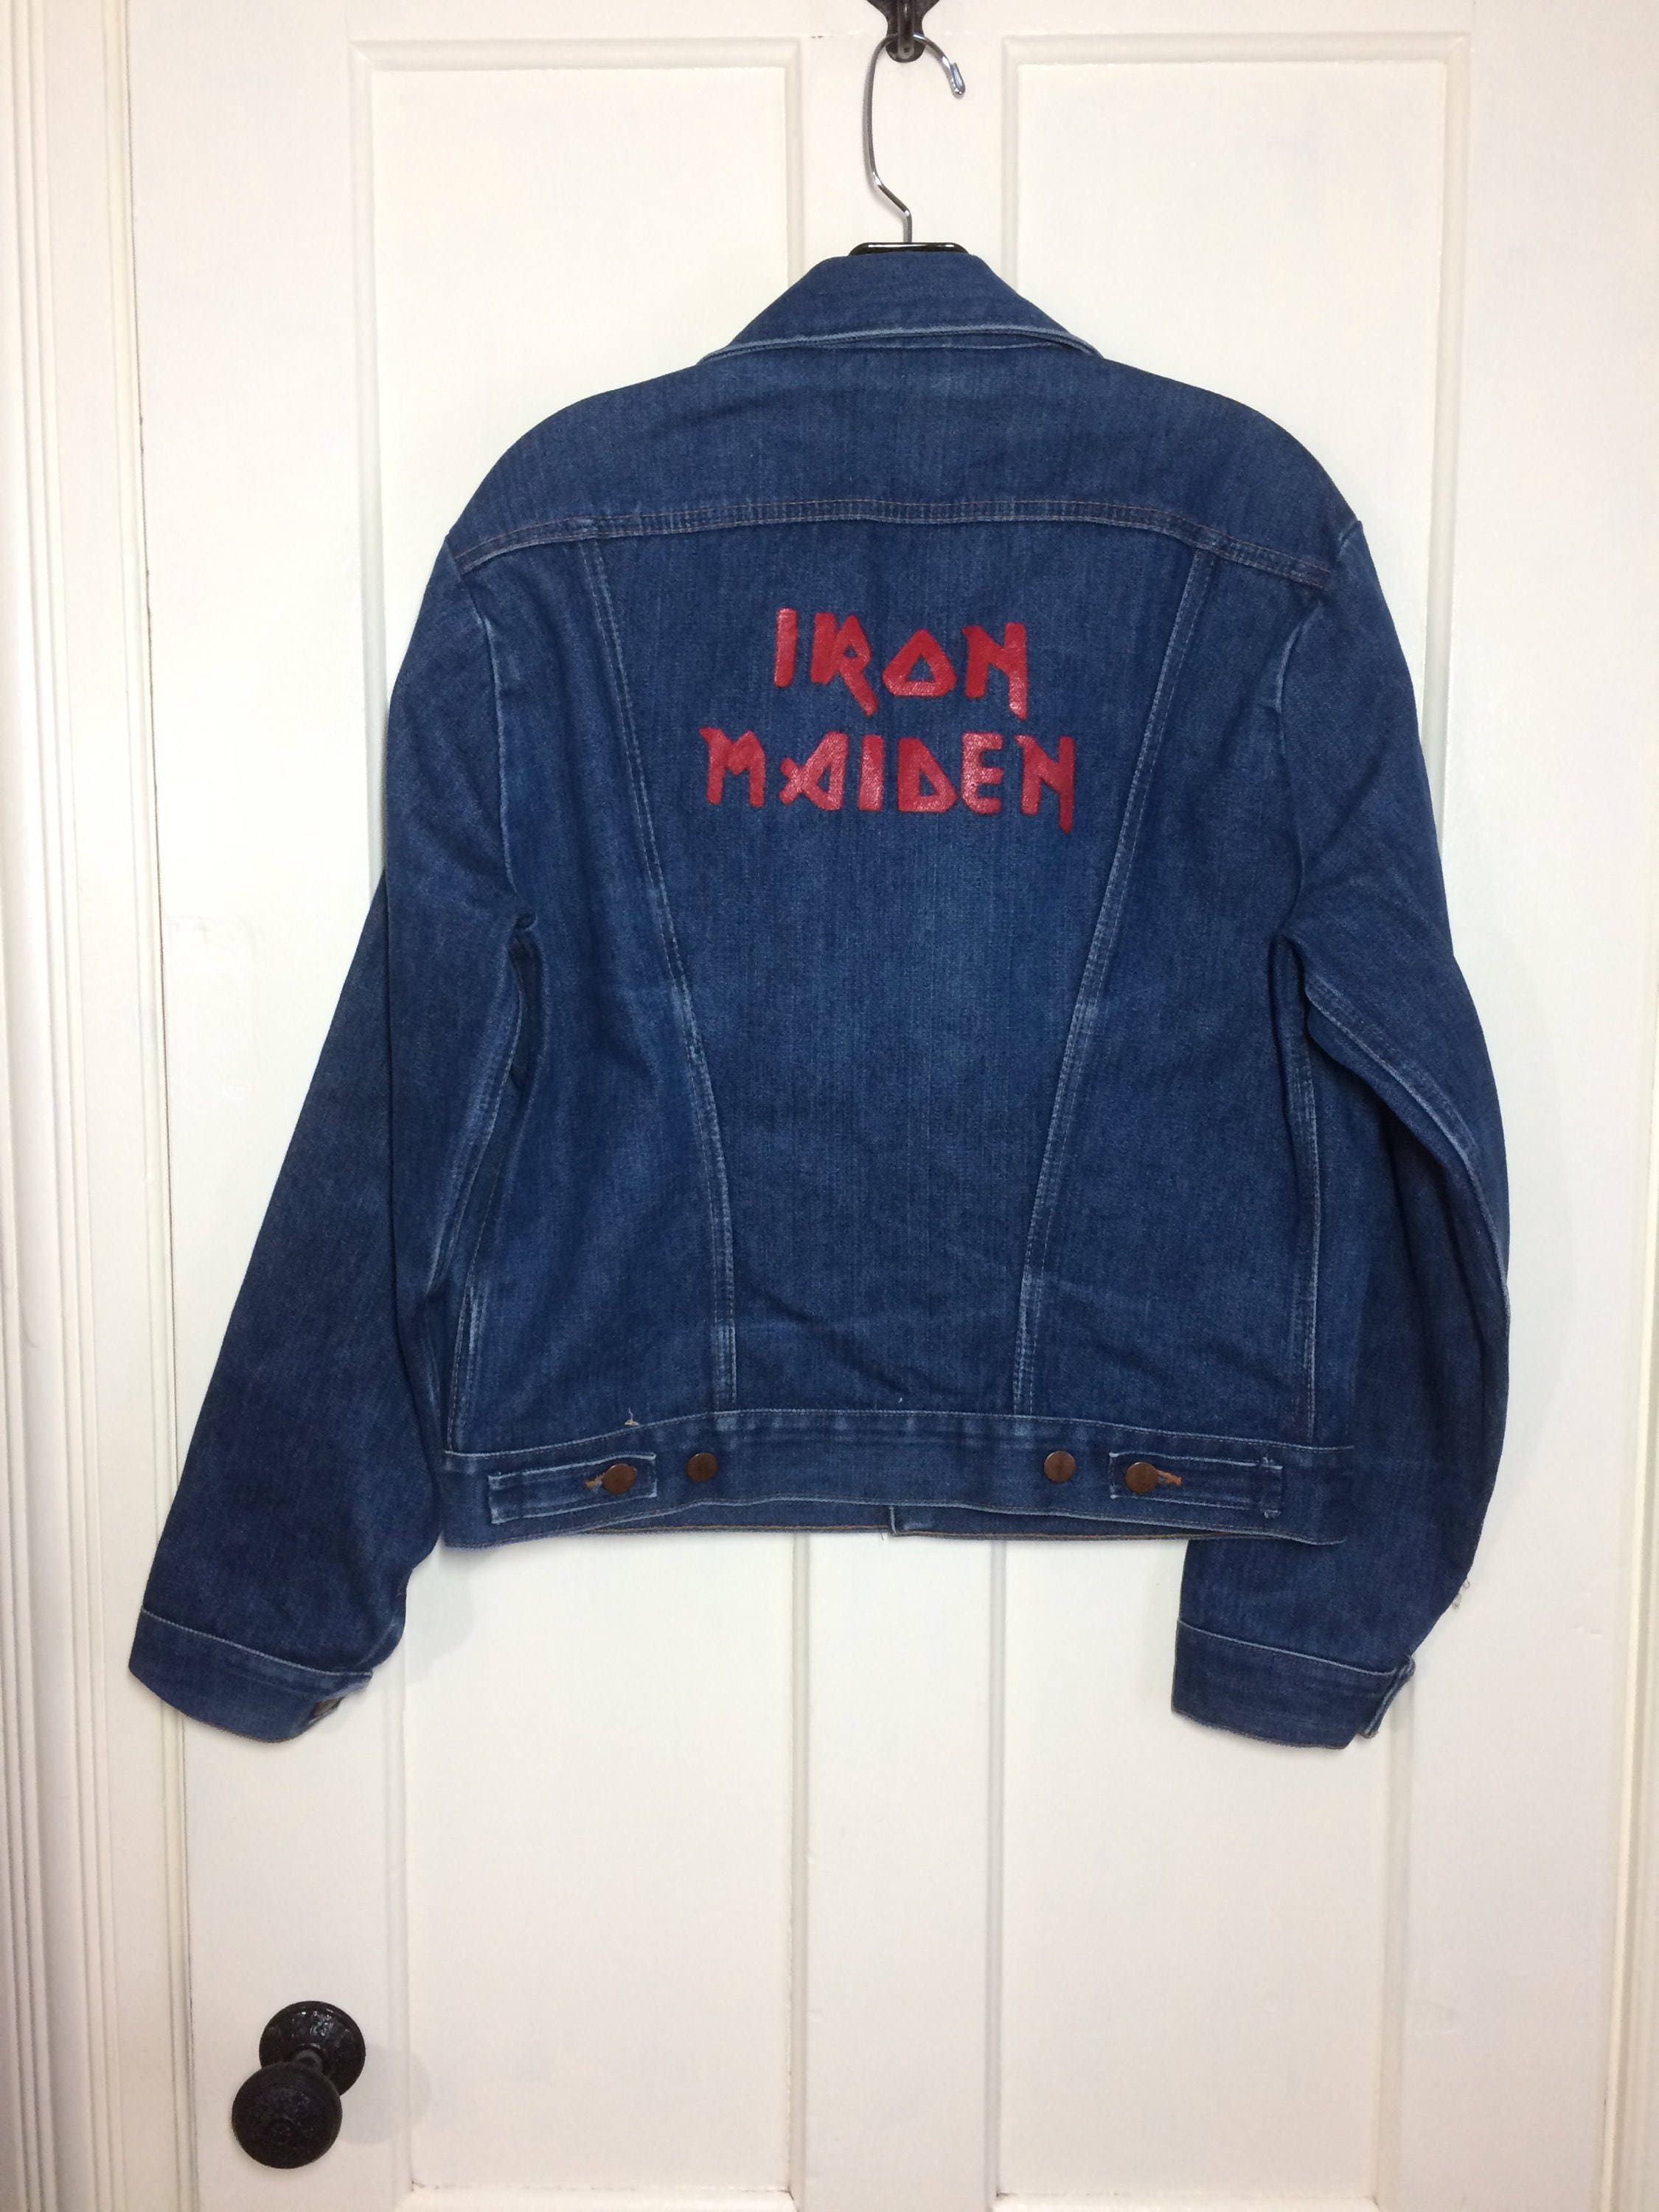 594f2f30a 1970s Wrangler Iron Maiden painted blue jean denim jacket 4 pocket ...